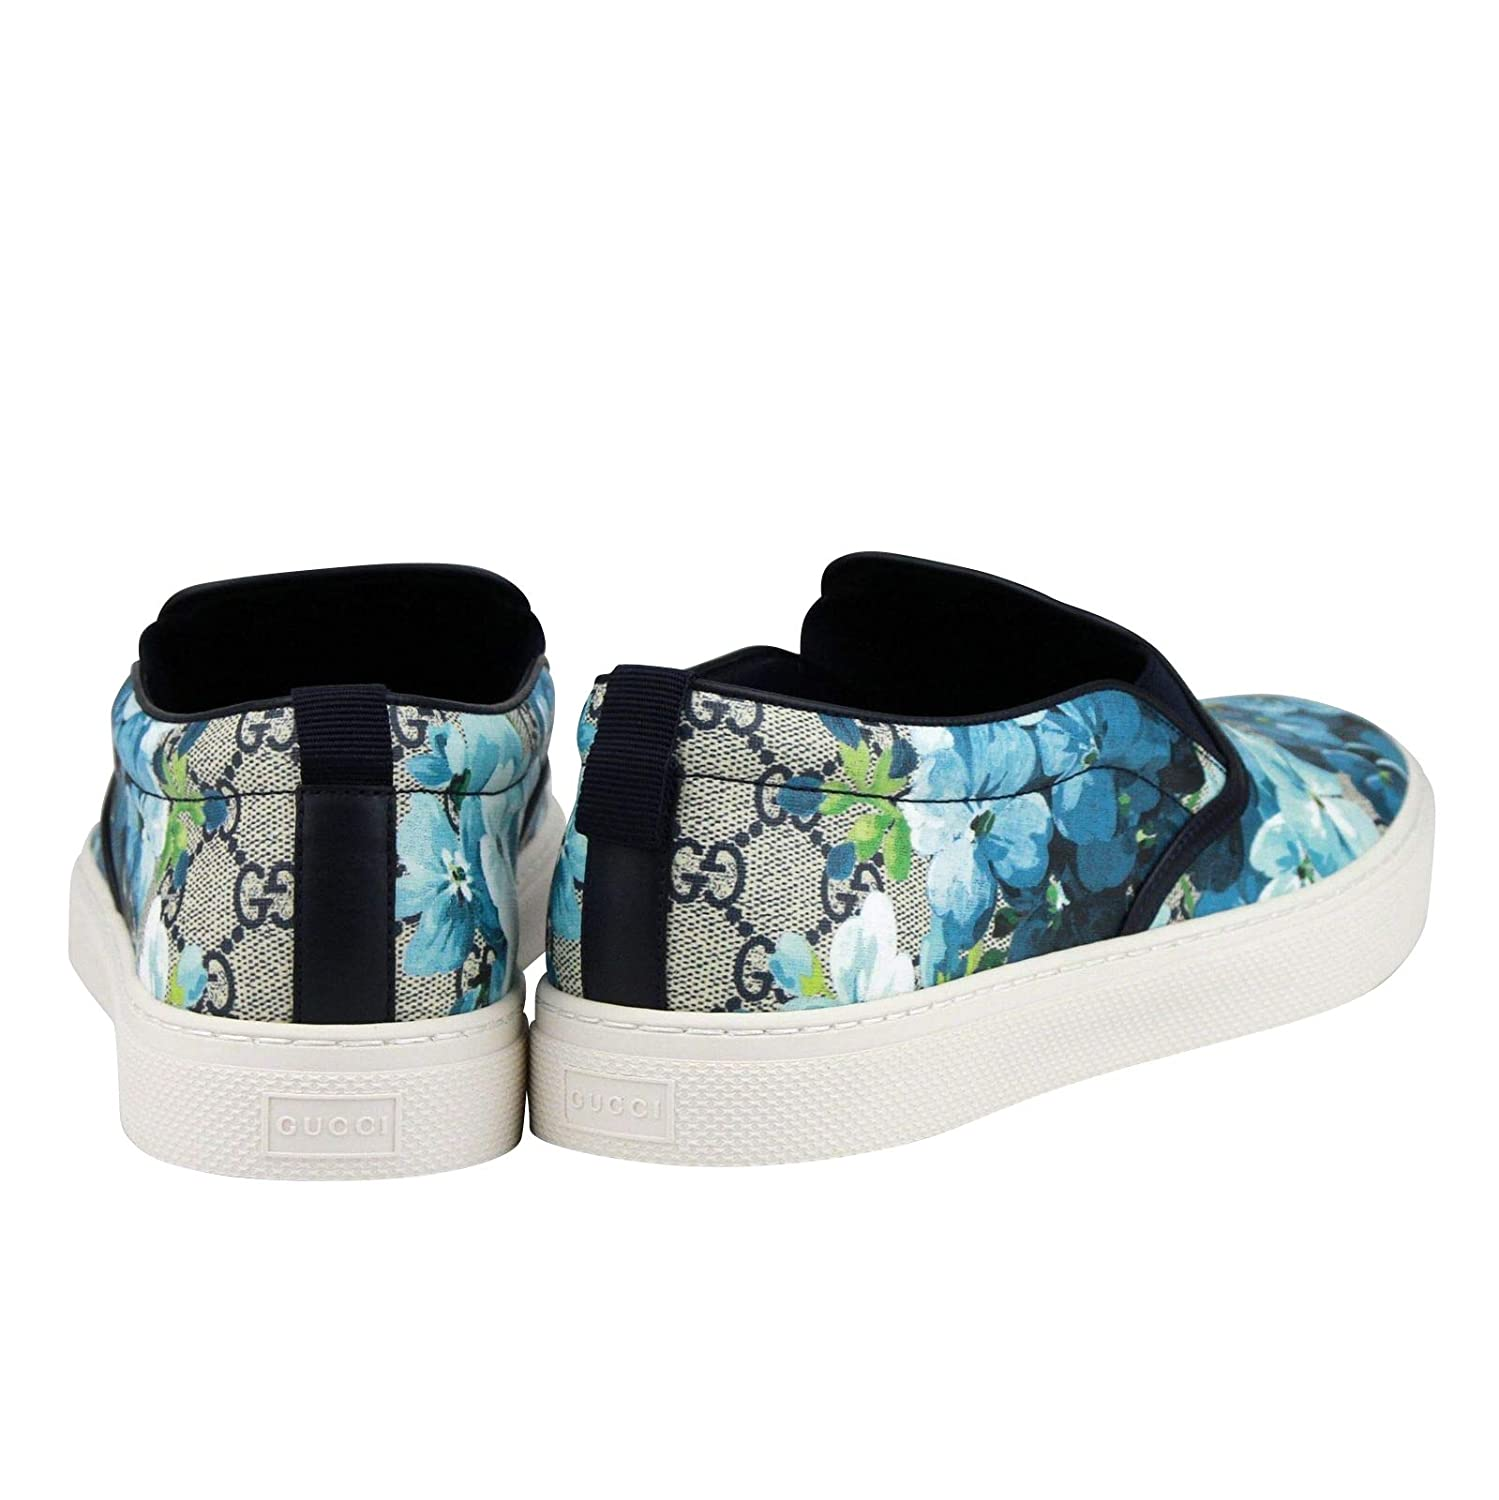 2d31644ba9f Amazon.com  Gucci Bloom Flower Print Blue GG Supreme Coated Canvas Slip  Sneakers 407362 8471  Shoes